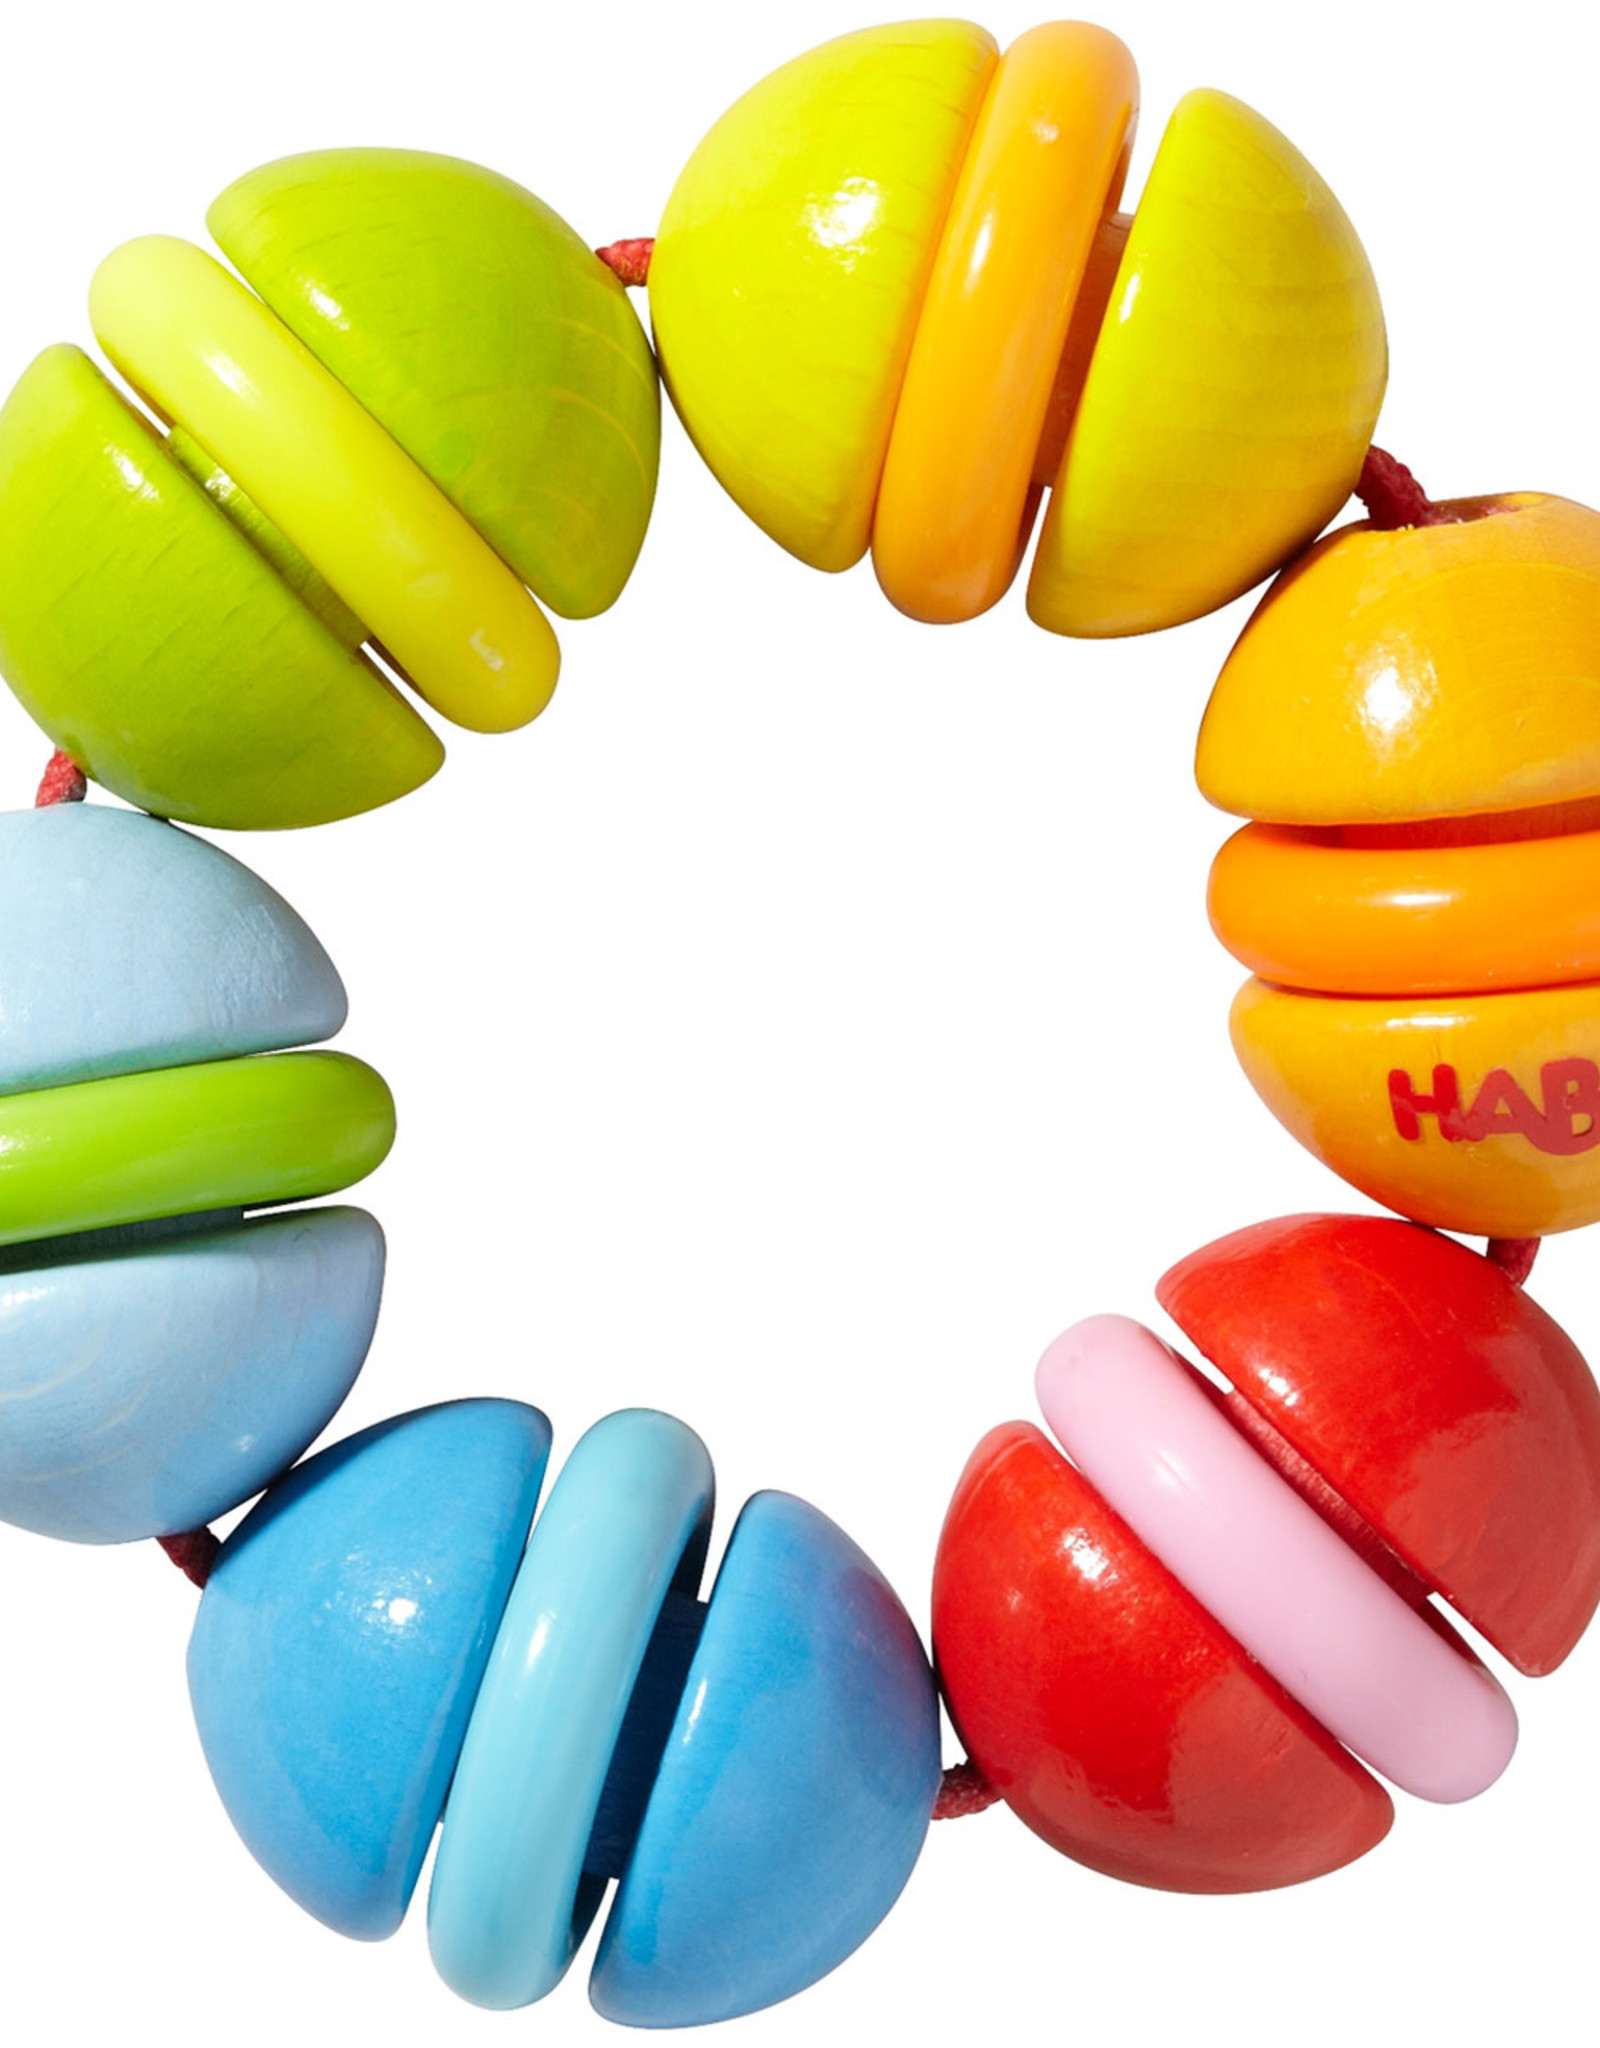 Haba Clatterit Wooden Clutching Toy with Plastic Rings